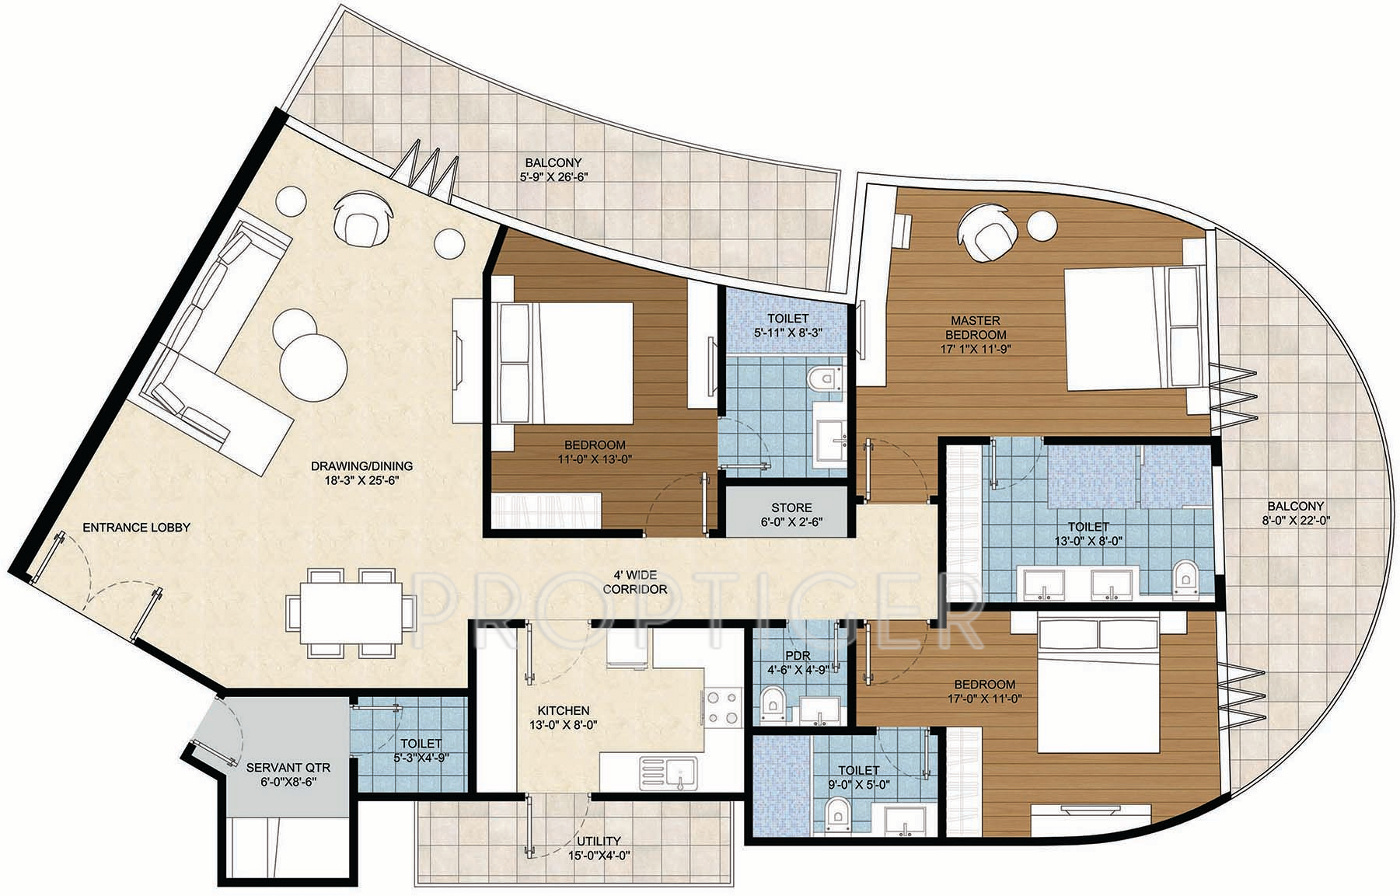 2500 sq ft house plans india house plans for 2500 sq ft floor plans